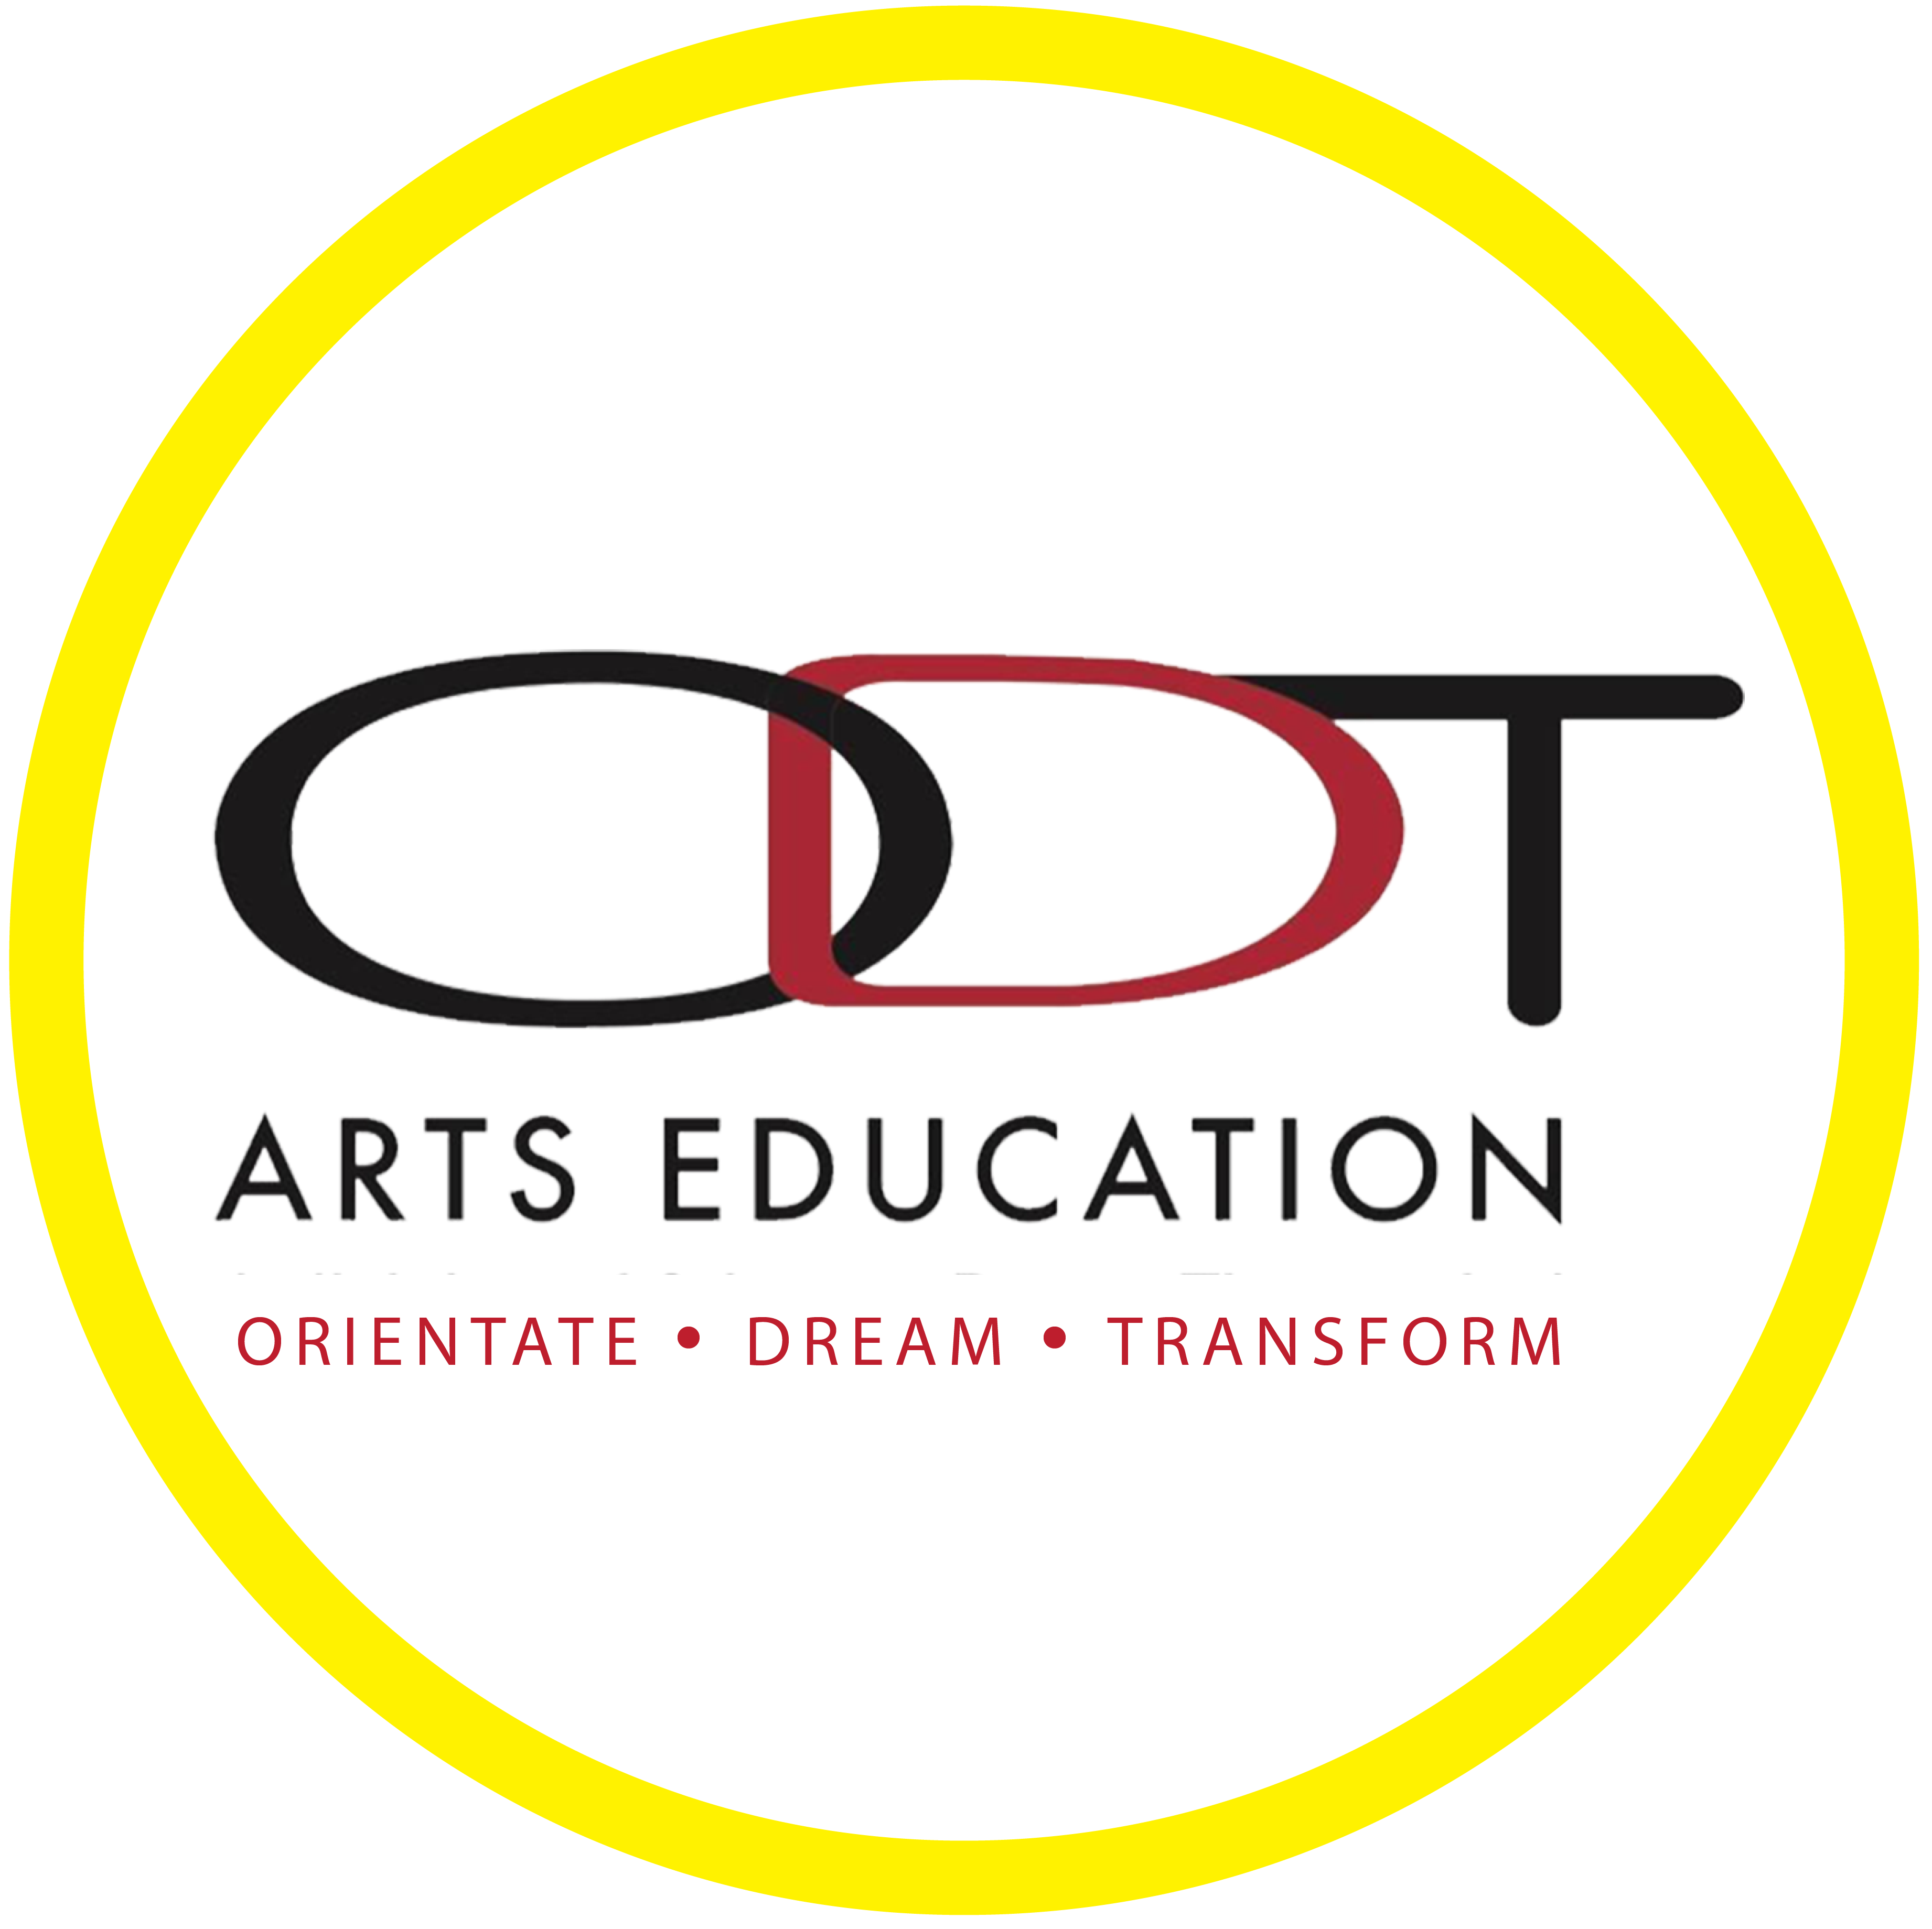 ODT Arts Education-new white-61